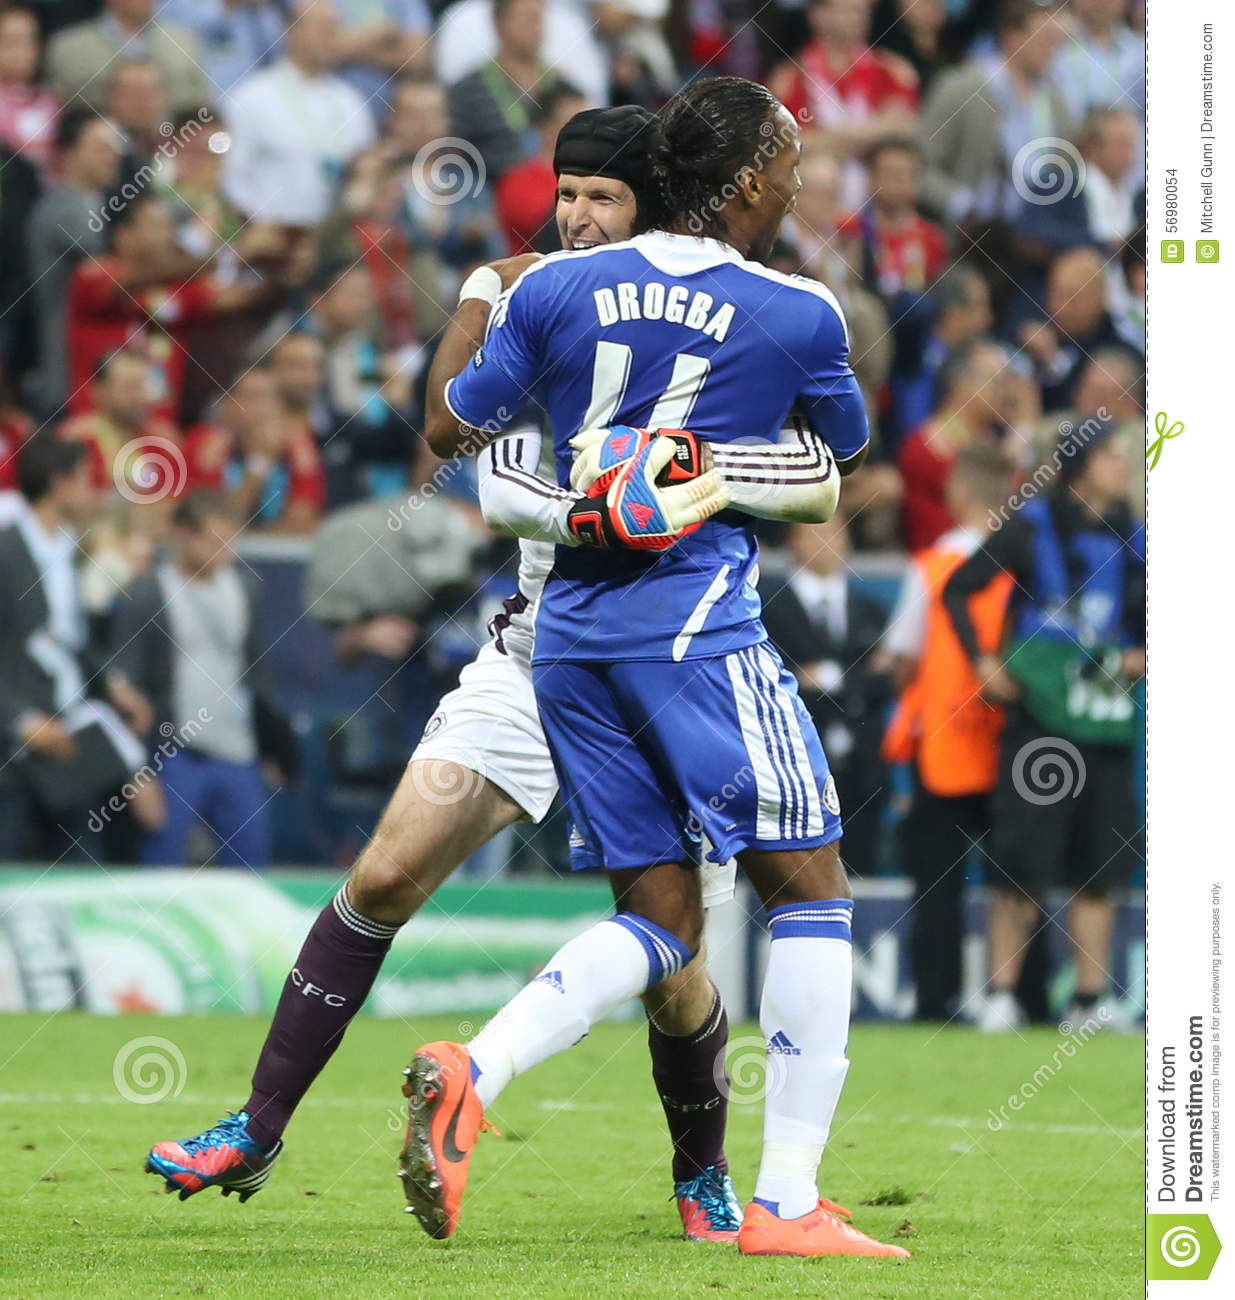 Champions League Final 2012: 2012 Champions League Final Chelsea Training Editorial